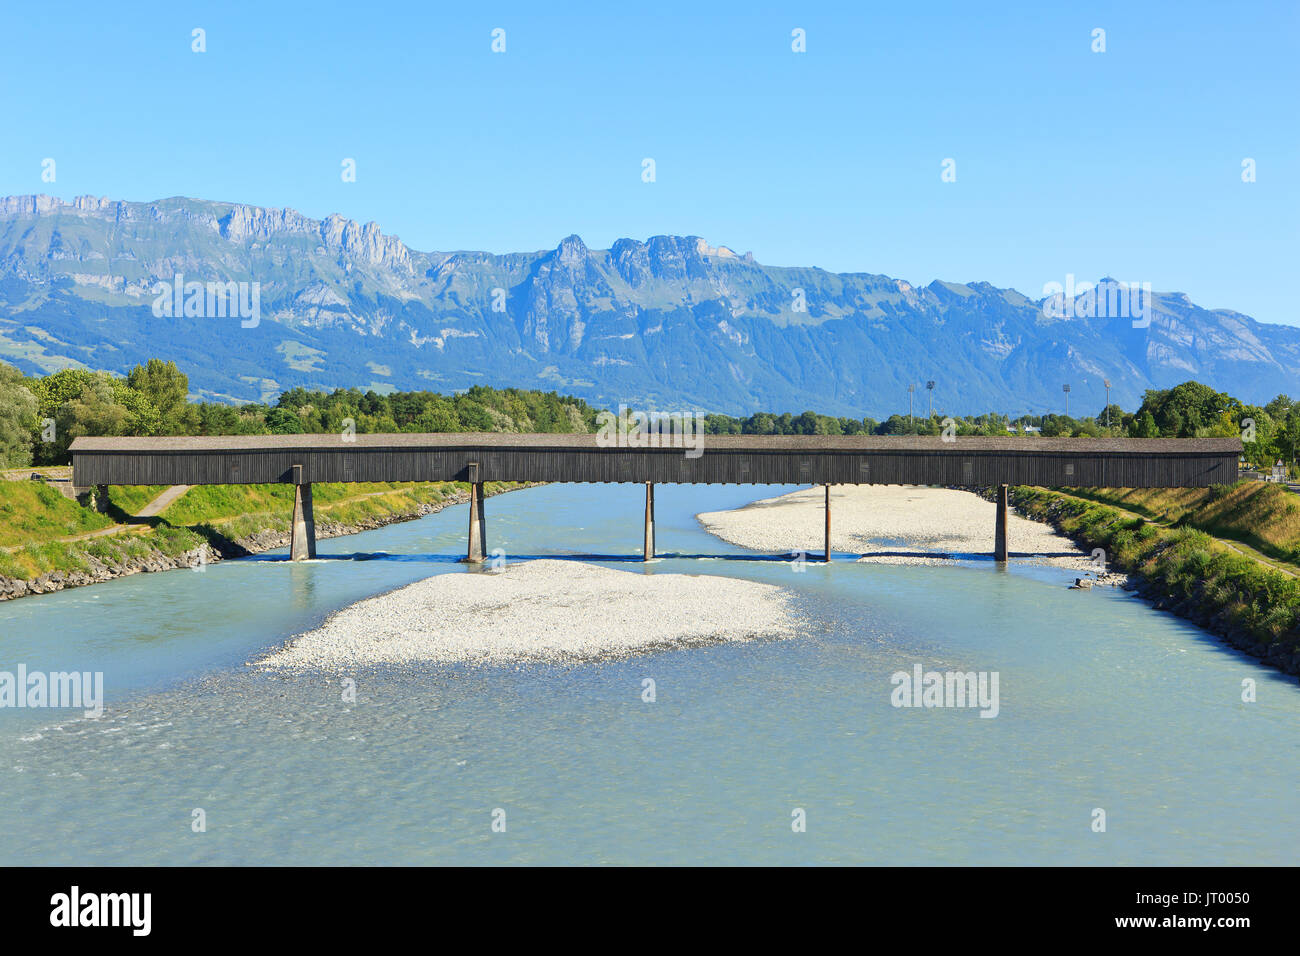 The Old bridge (1901) over the Rhine in Vaduz, Liechtenstein - Stock Image